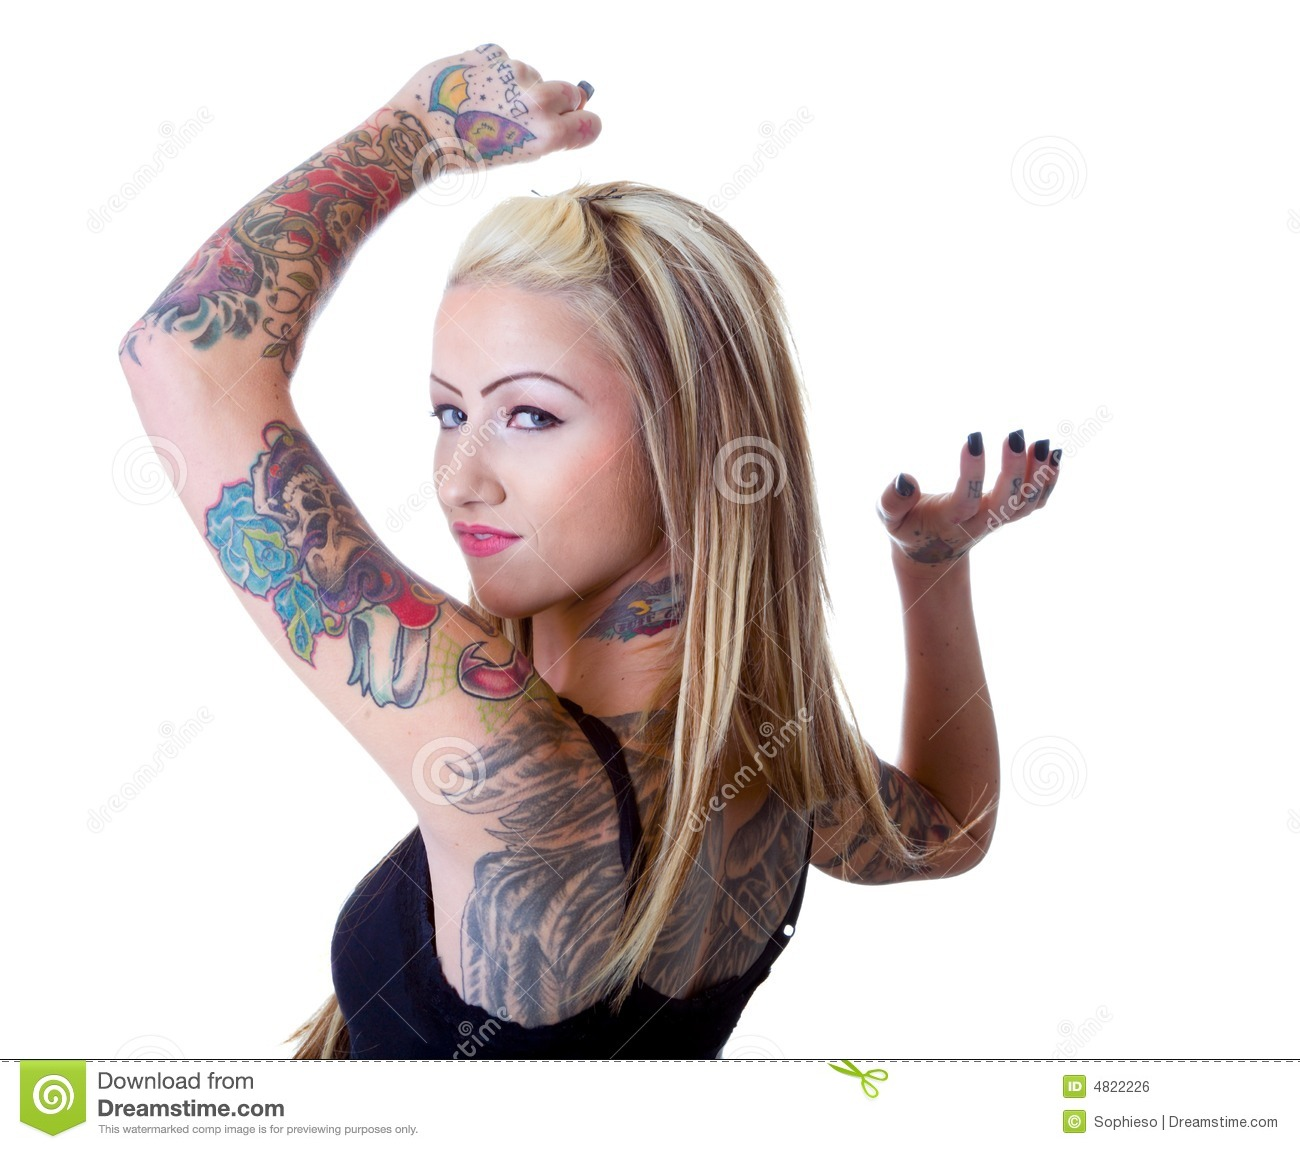 Tattoo Woman Photo: Wings Of A Tattoo Girl Stock Photo. Image Of Contemporary